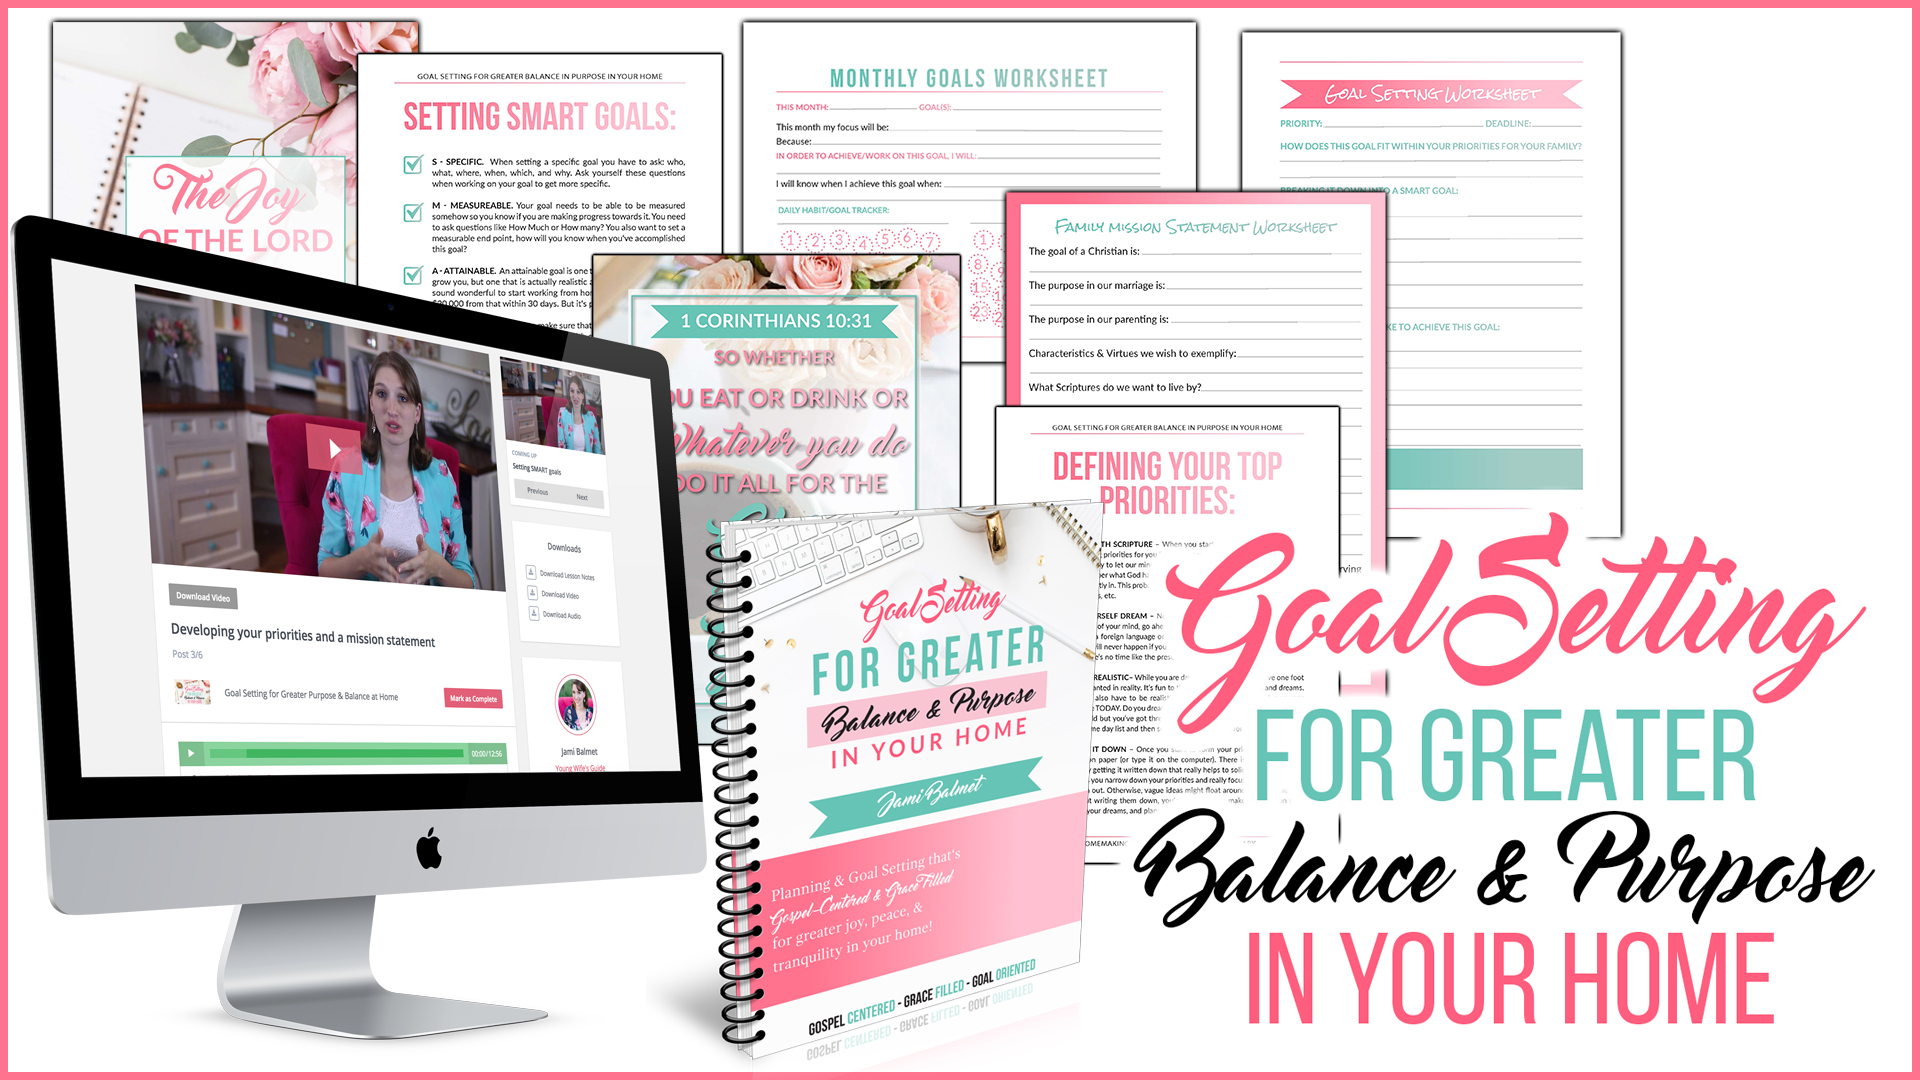 Goal setting for greater balance and purpose in your home